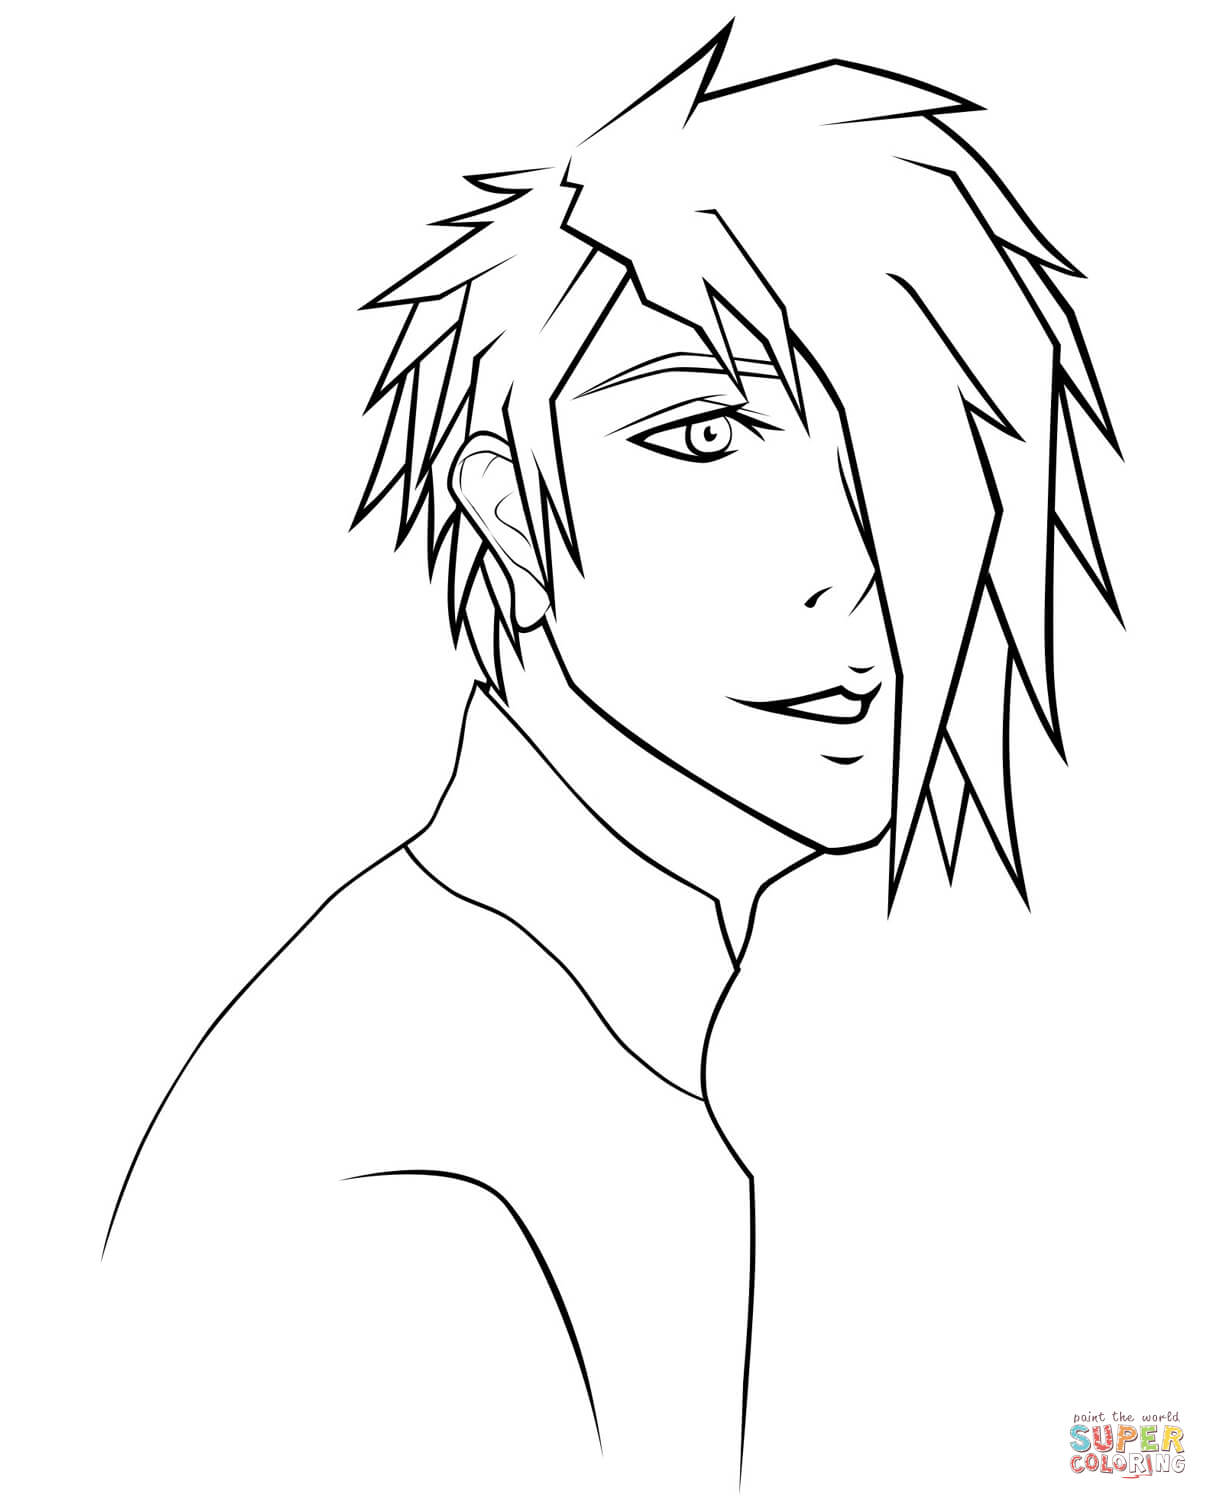 kawaii anime boy coloring pages rj anime boy portrait by sugarcoatedlollipops coloring pages anime kawaii coloring boy